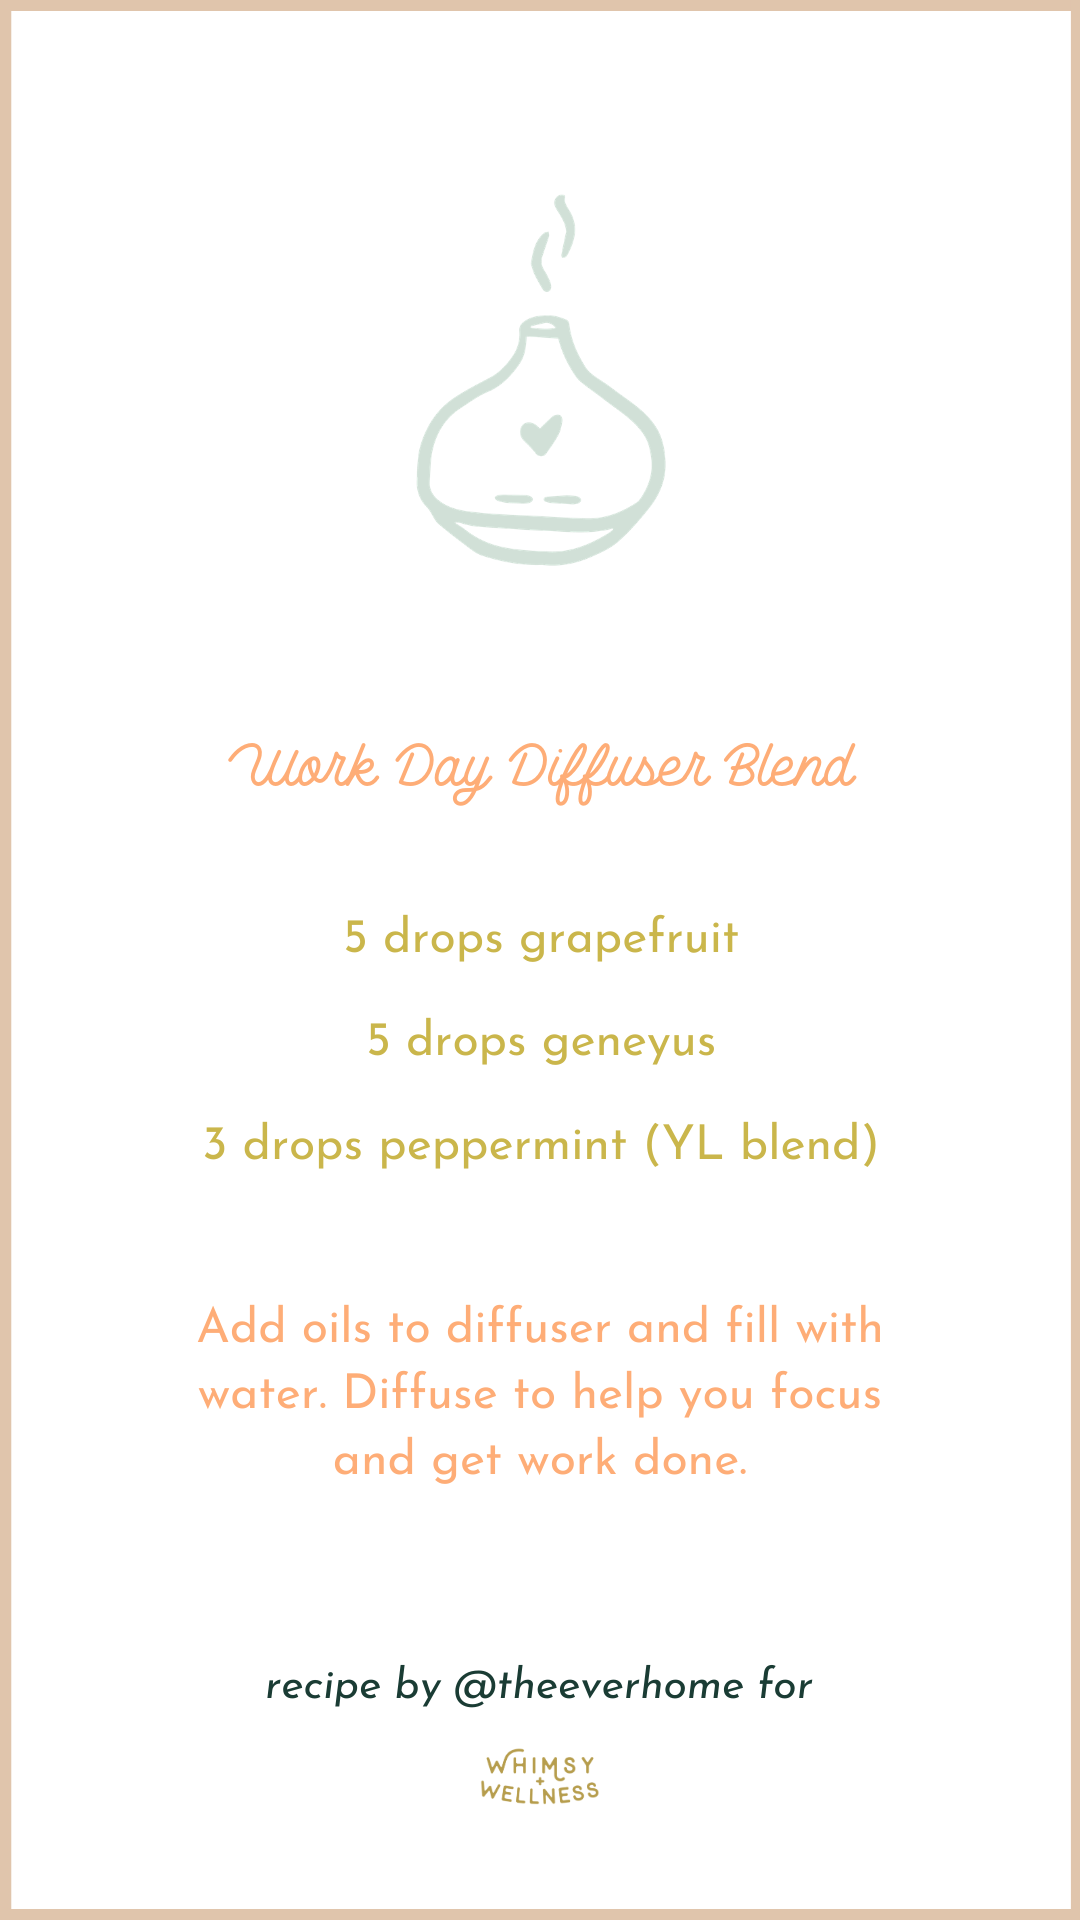 Work Day Diffuser Blend with diffuser Whimsy + Wellness